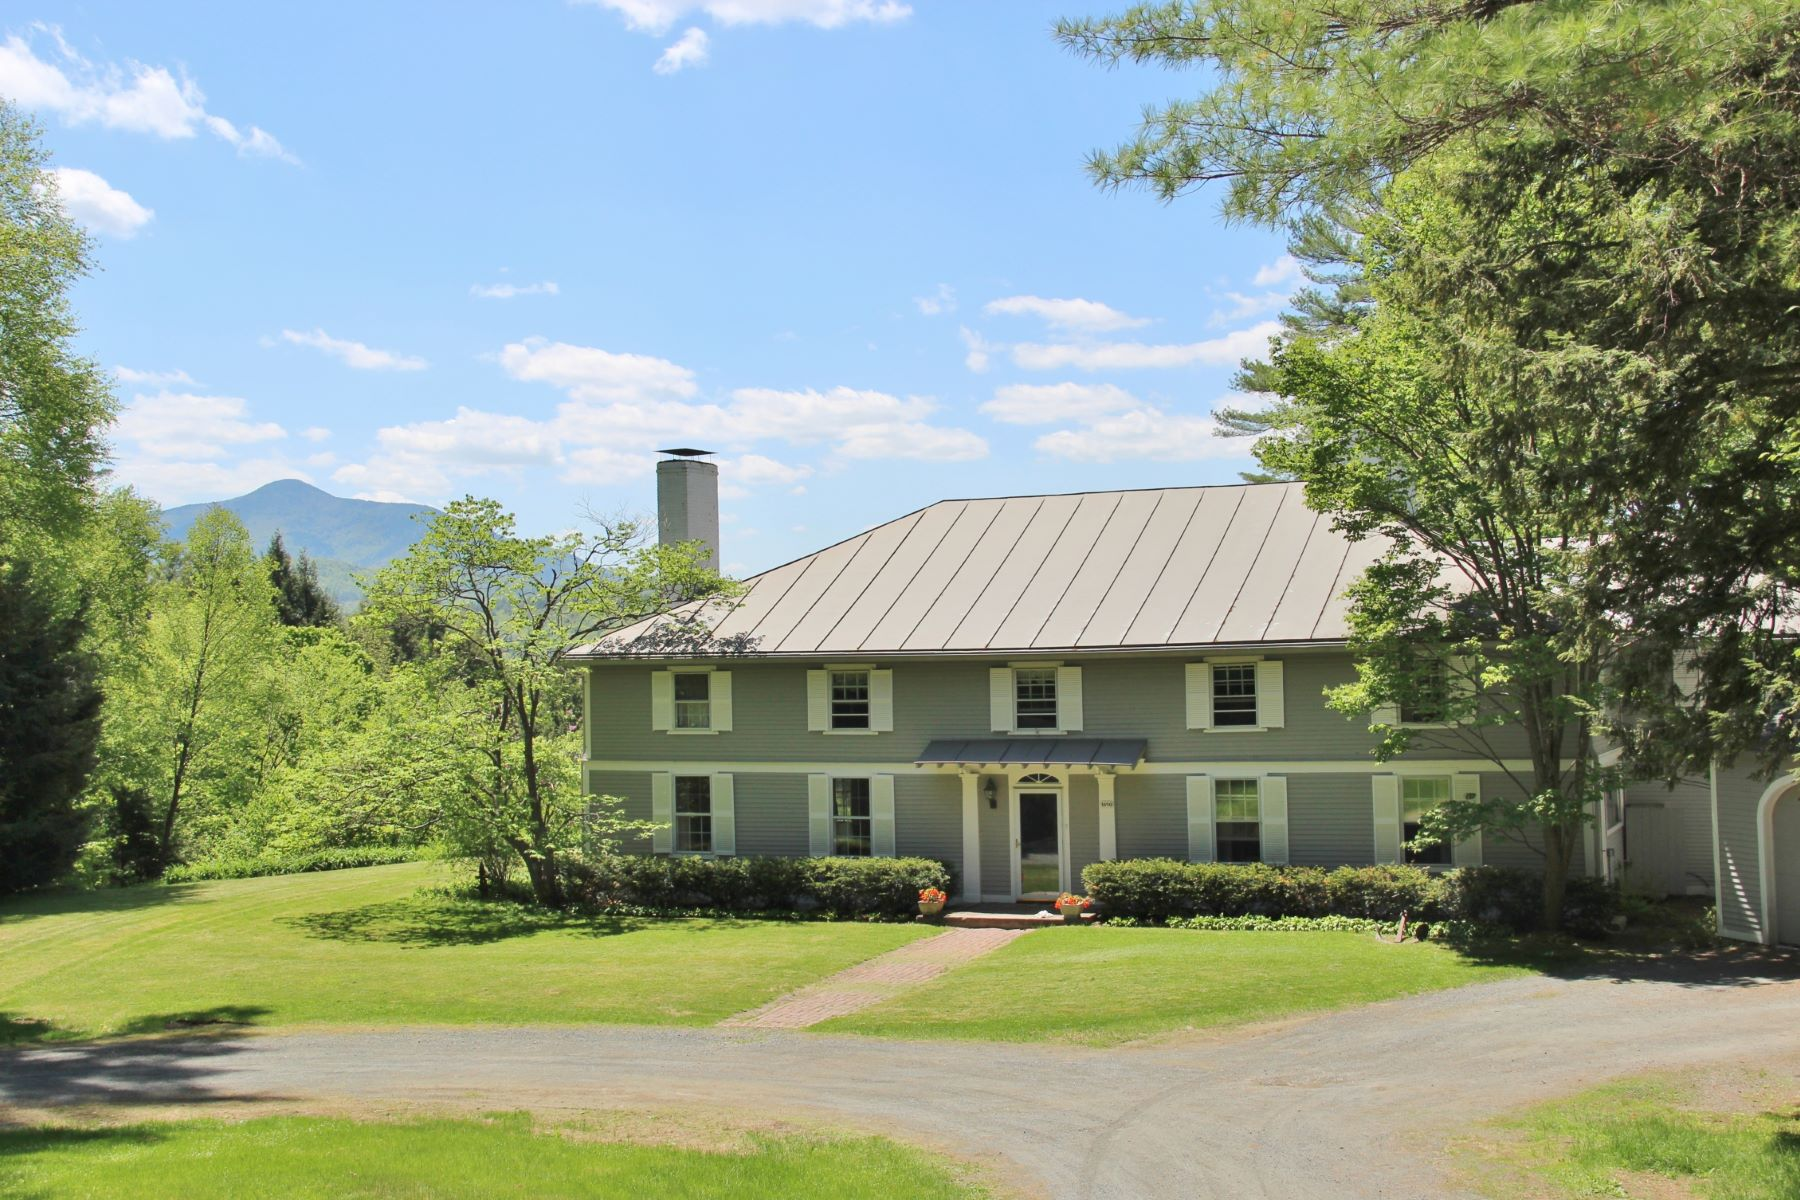 Single Family Home for Sale at Cornish Art Colony Historic Home 193 Platt Rd Cornish, New Hampshire, 03745 United States